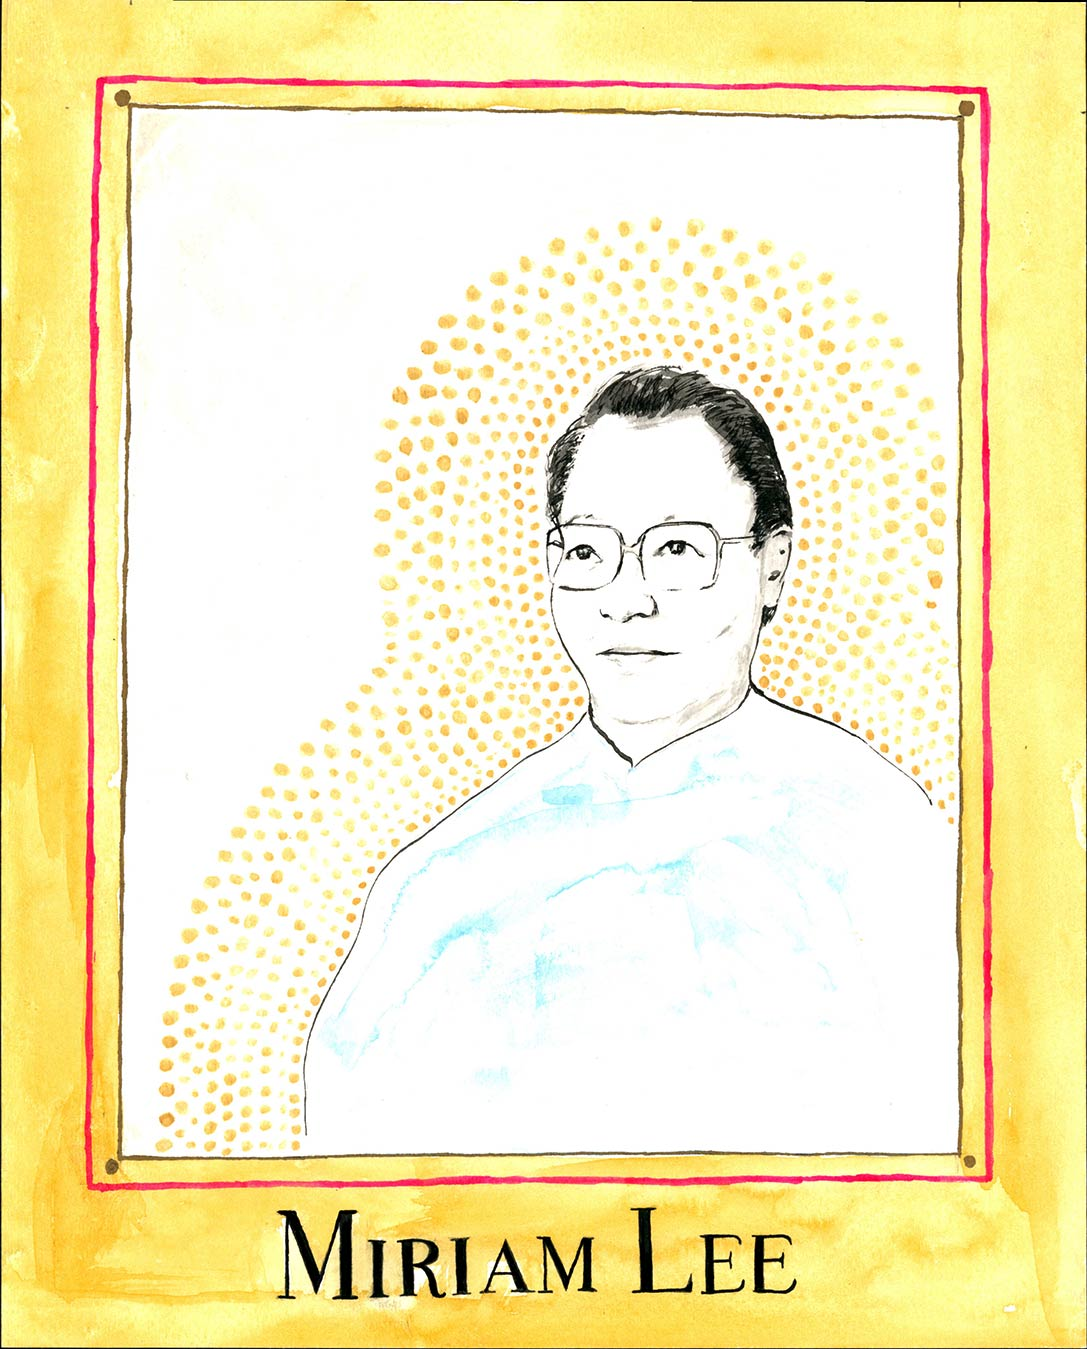 Drawn portrait of asian man with gold border